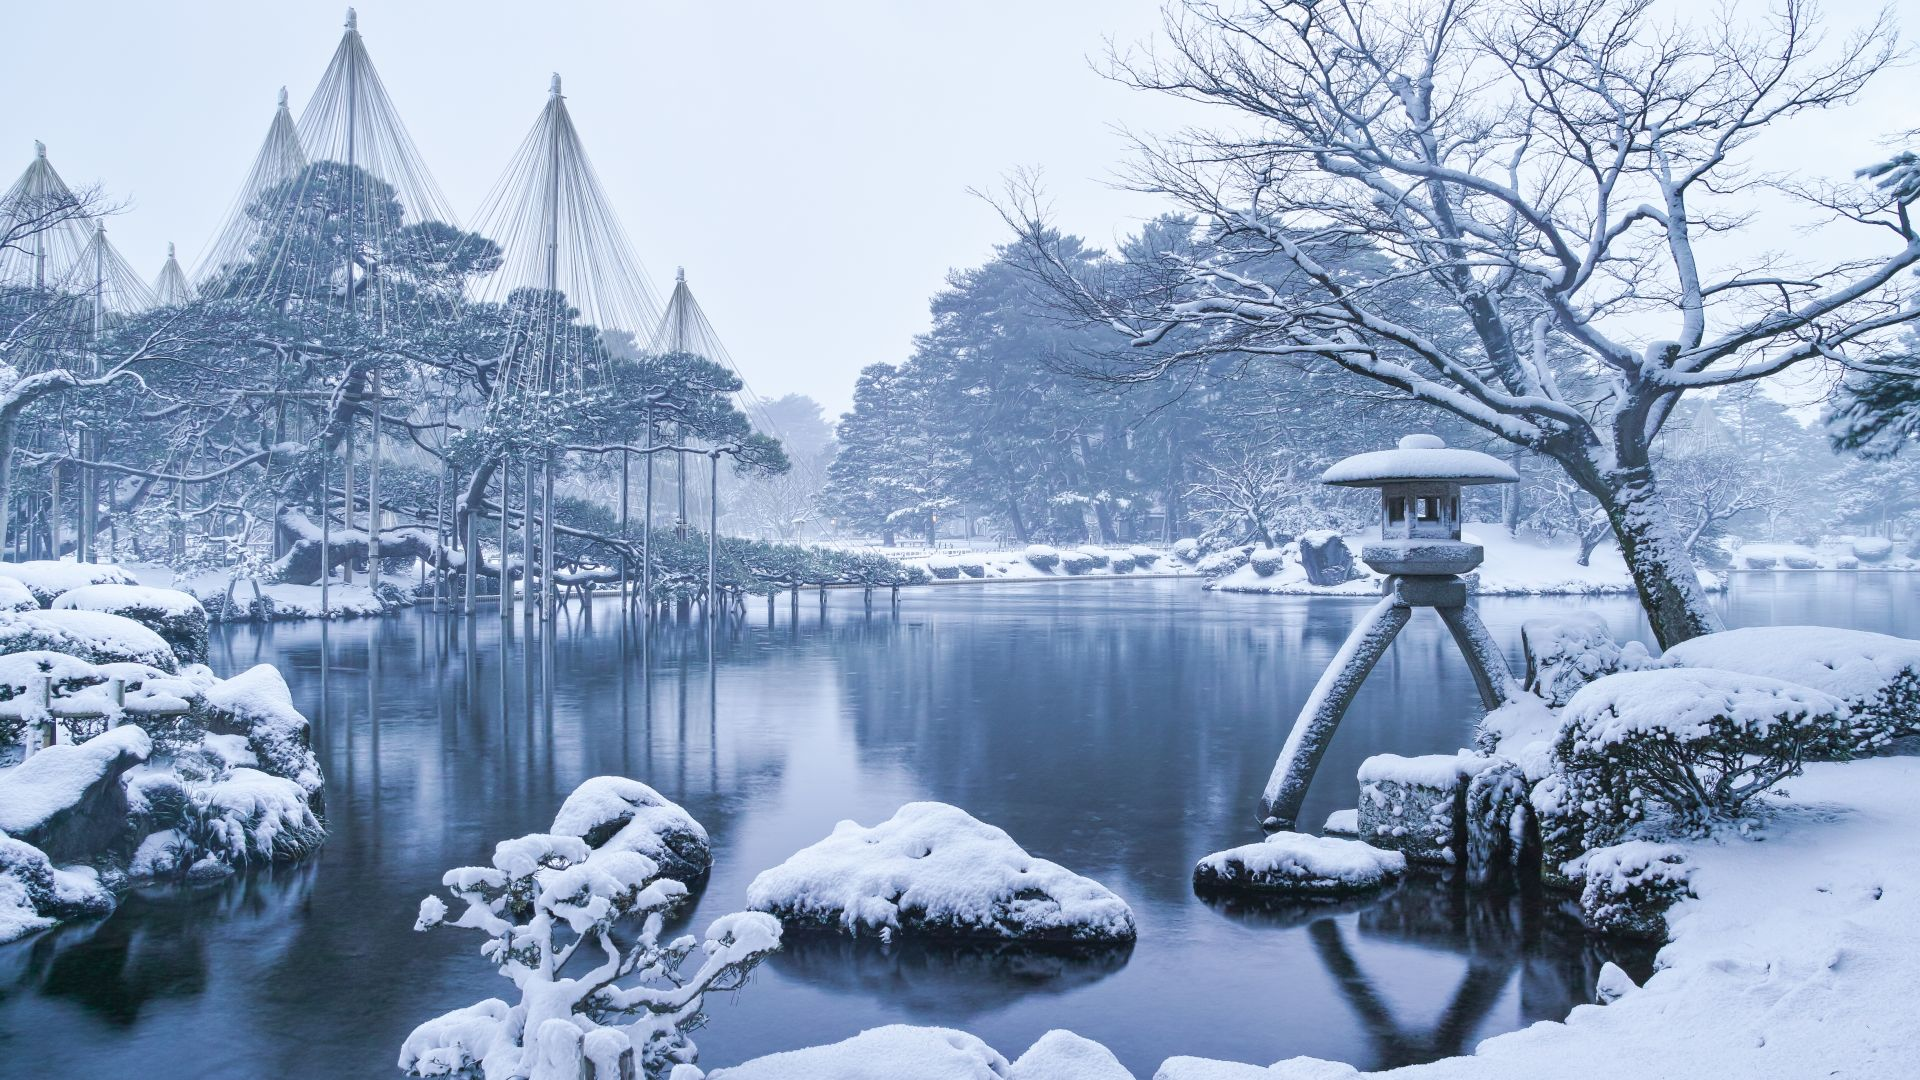 Kanazawa, Ishikawa – A Cultural Capital Of Japan – Where To Go After The Snow